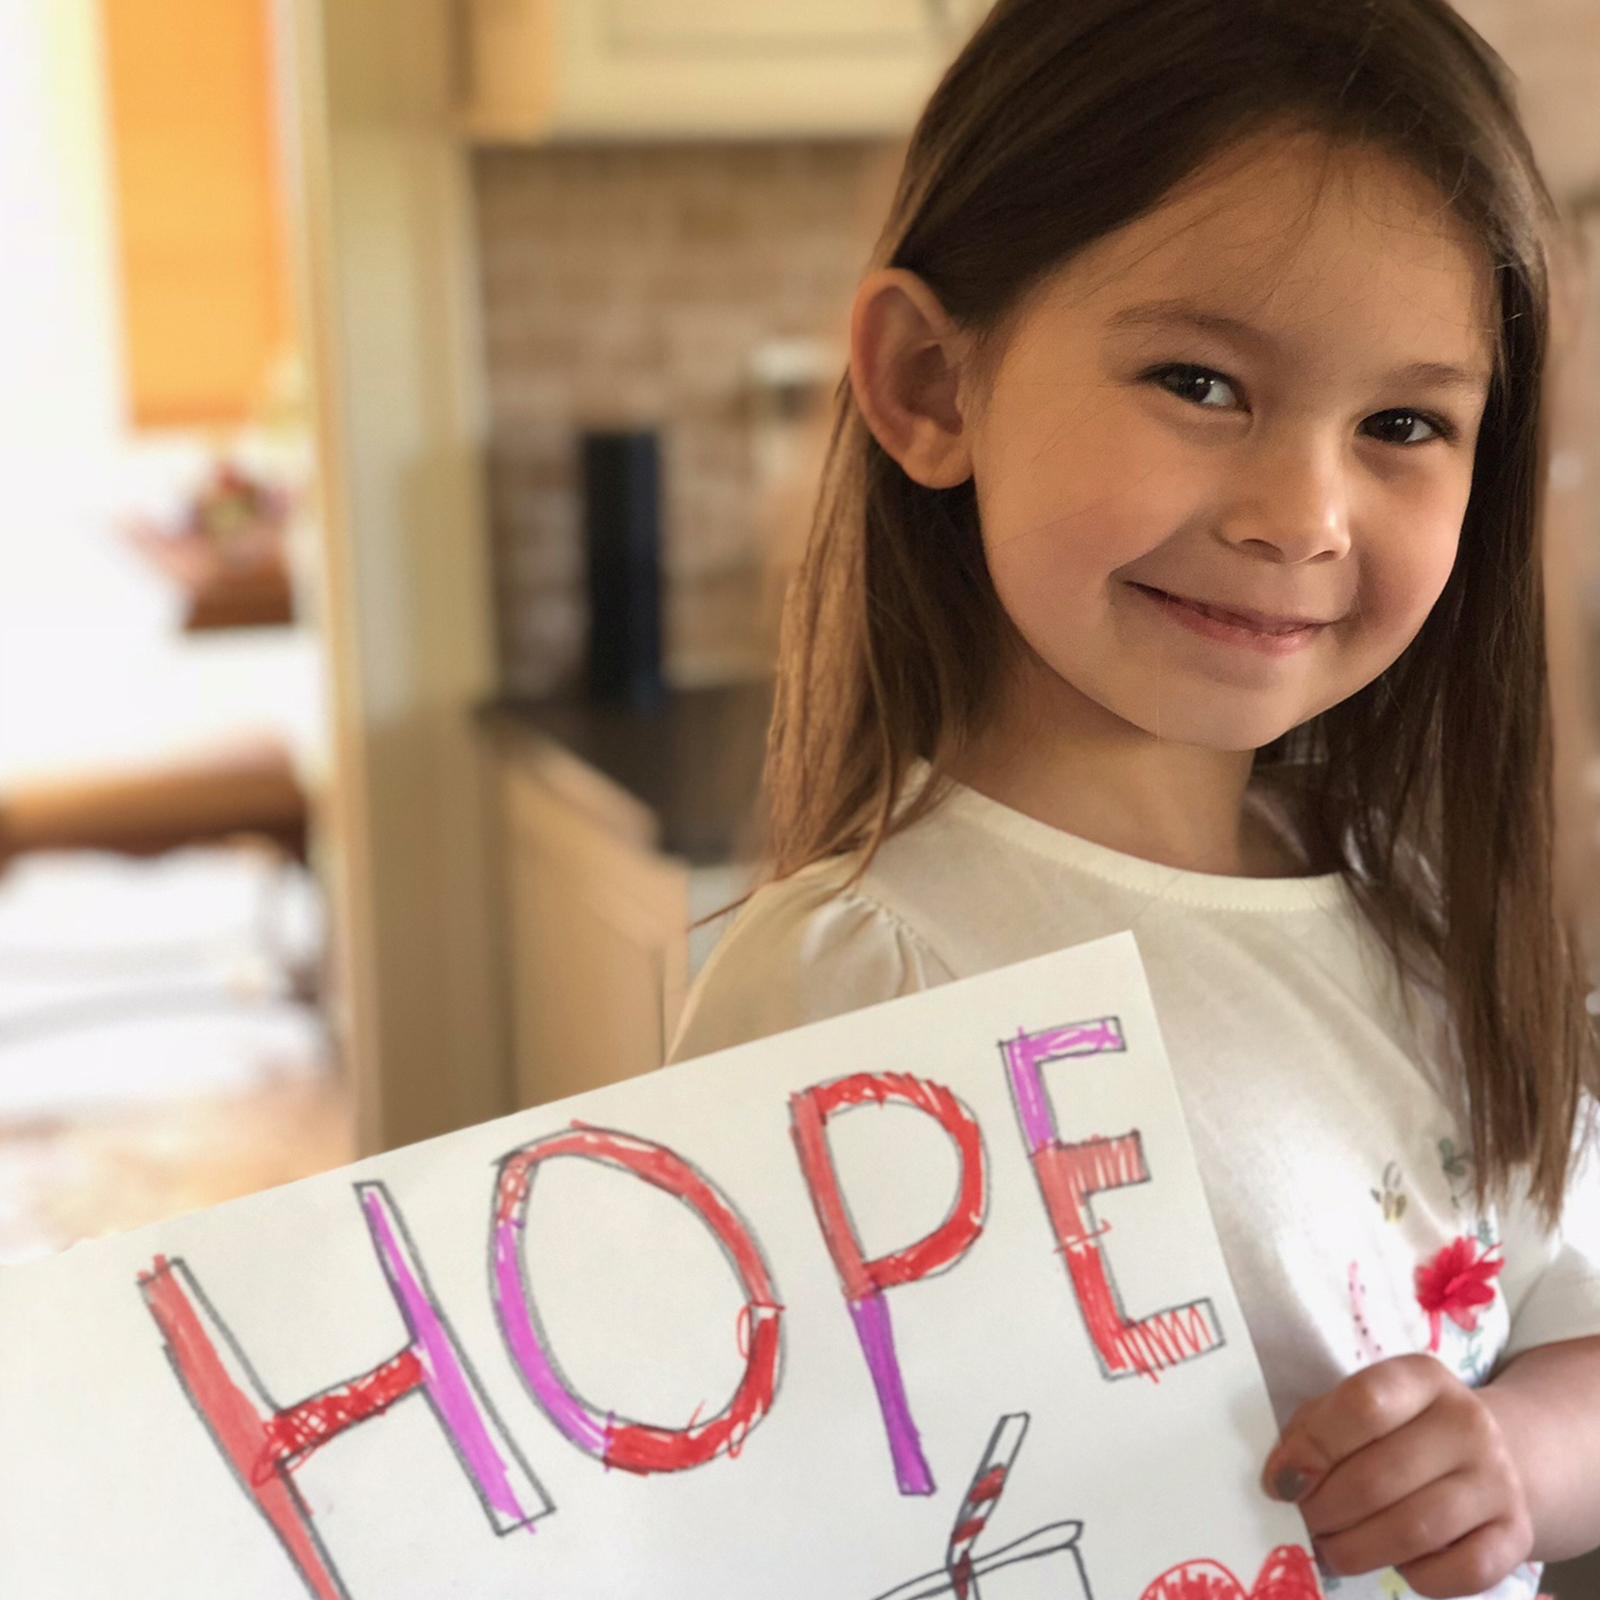 Little Girl with HOPE sign